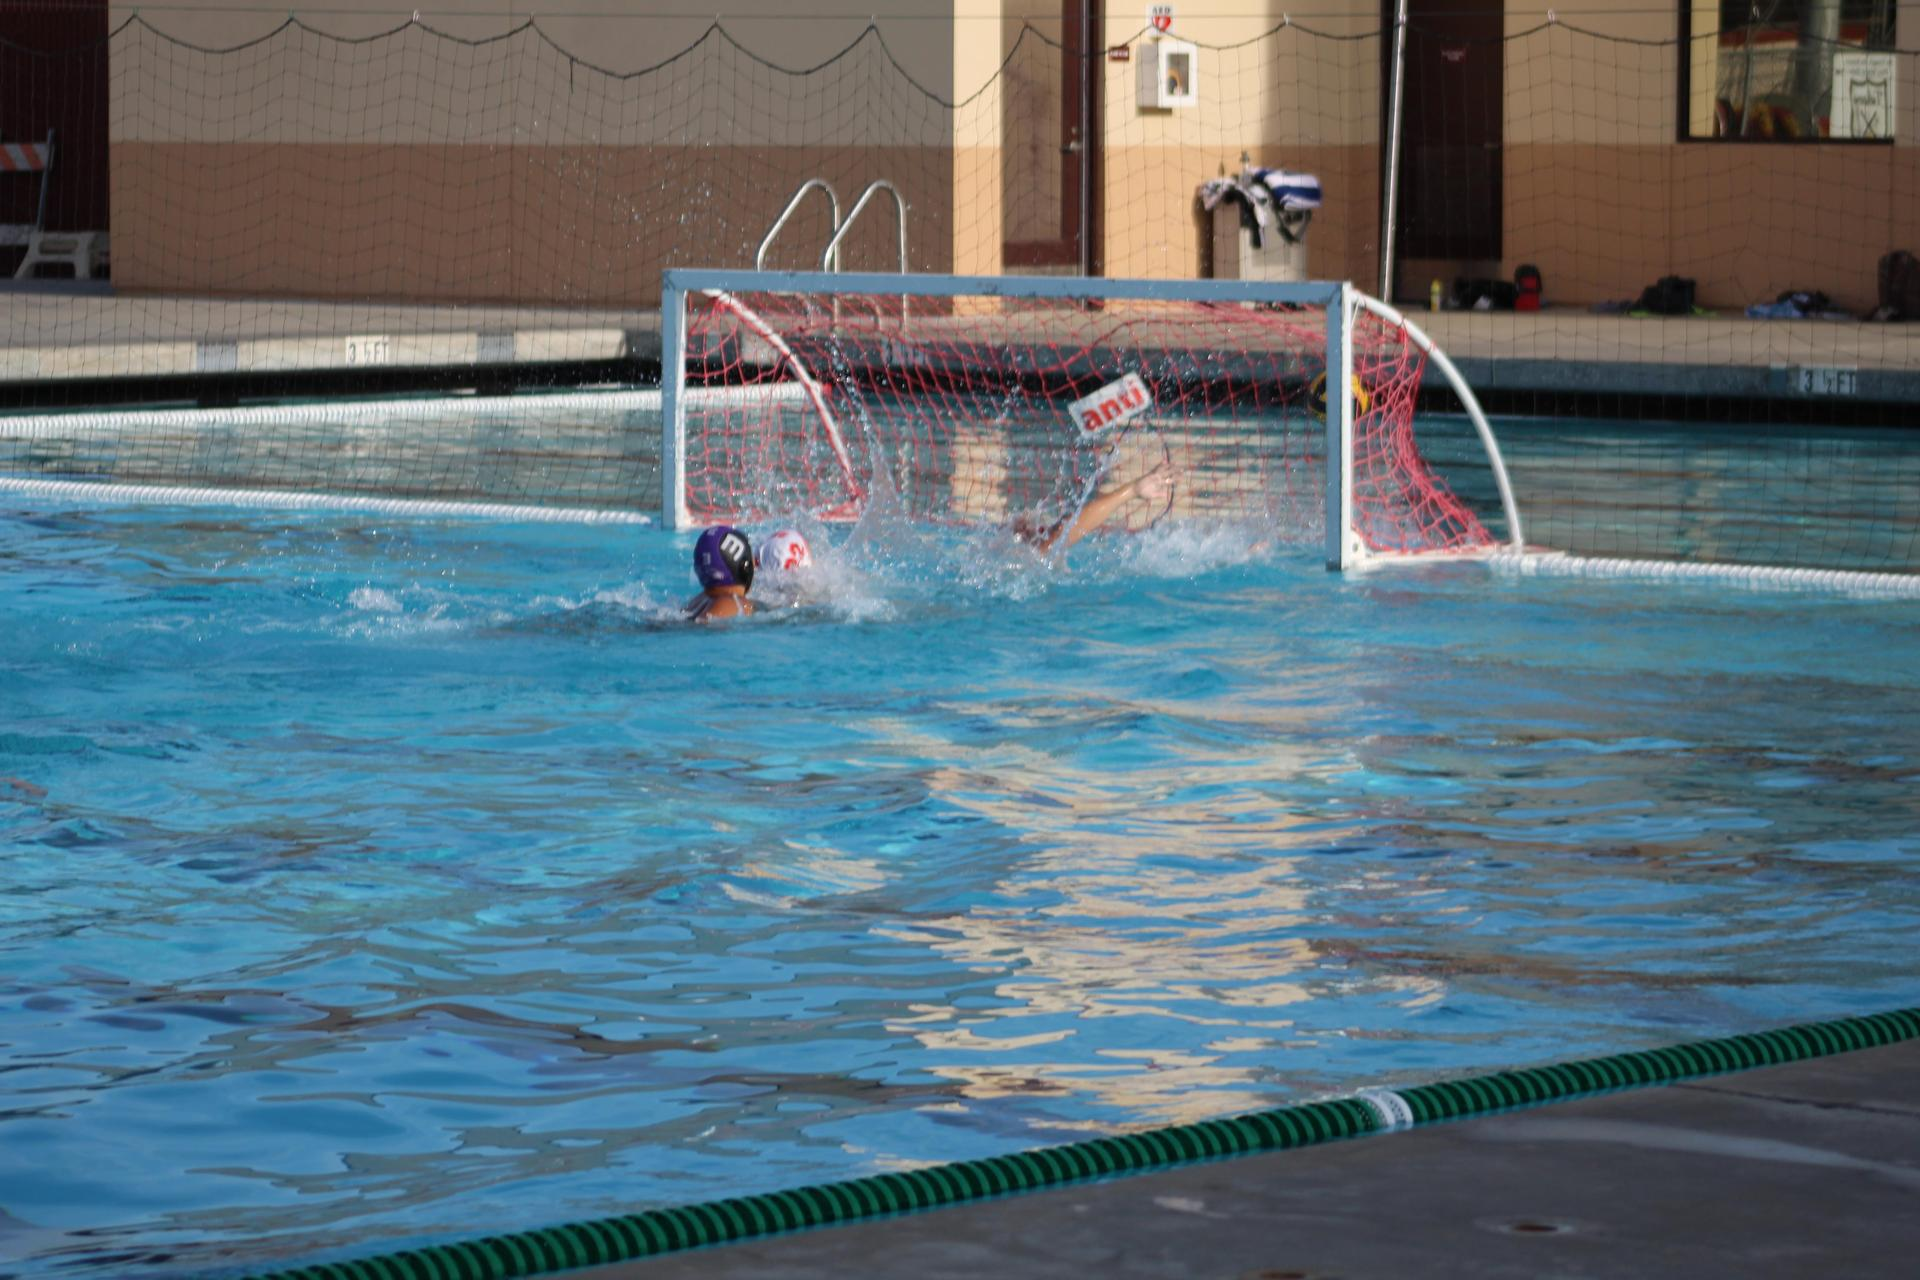 Boys playing water polo